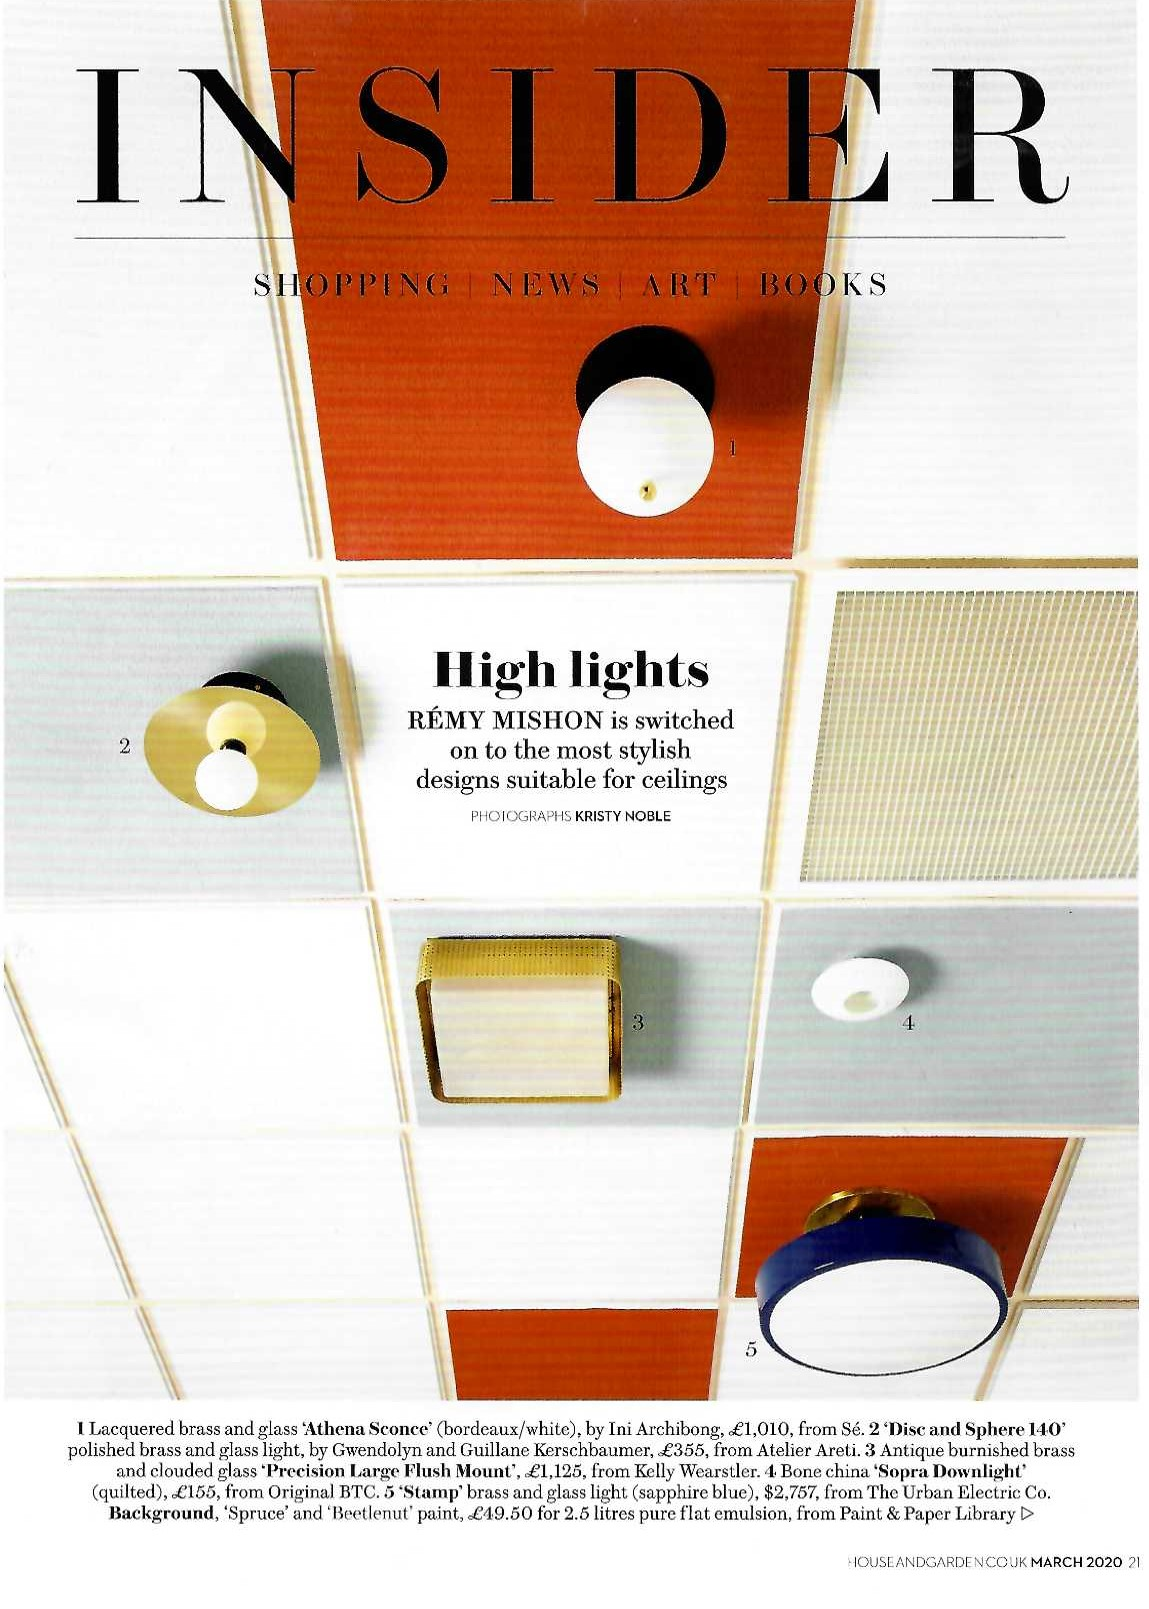 The only way (to look) is up, with Original BTC's bone china Sopra downlight in House and Garden, March